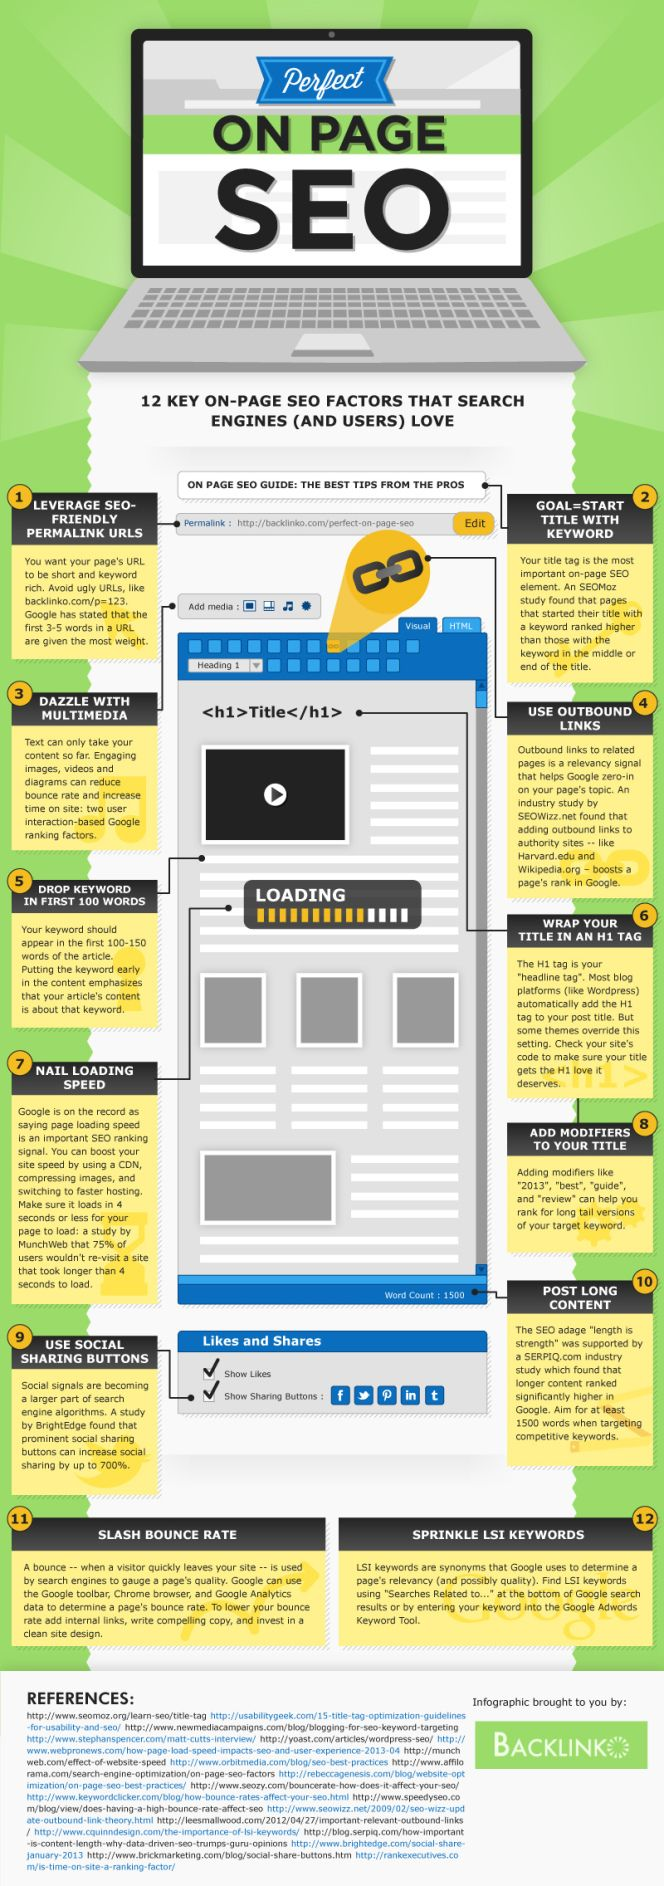 Learn more about on-page seo with this infographic!